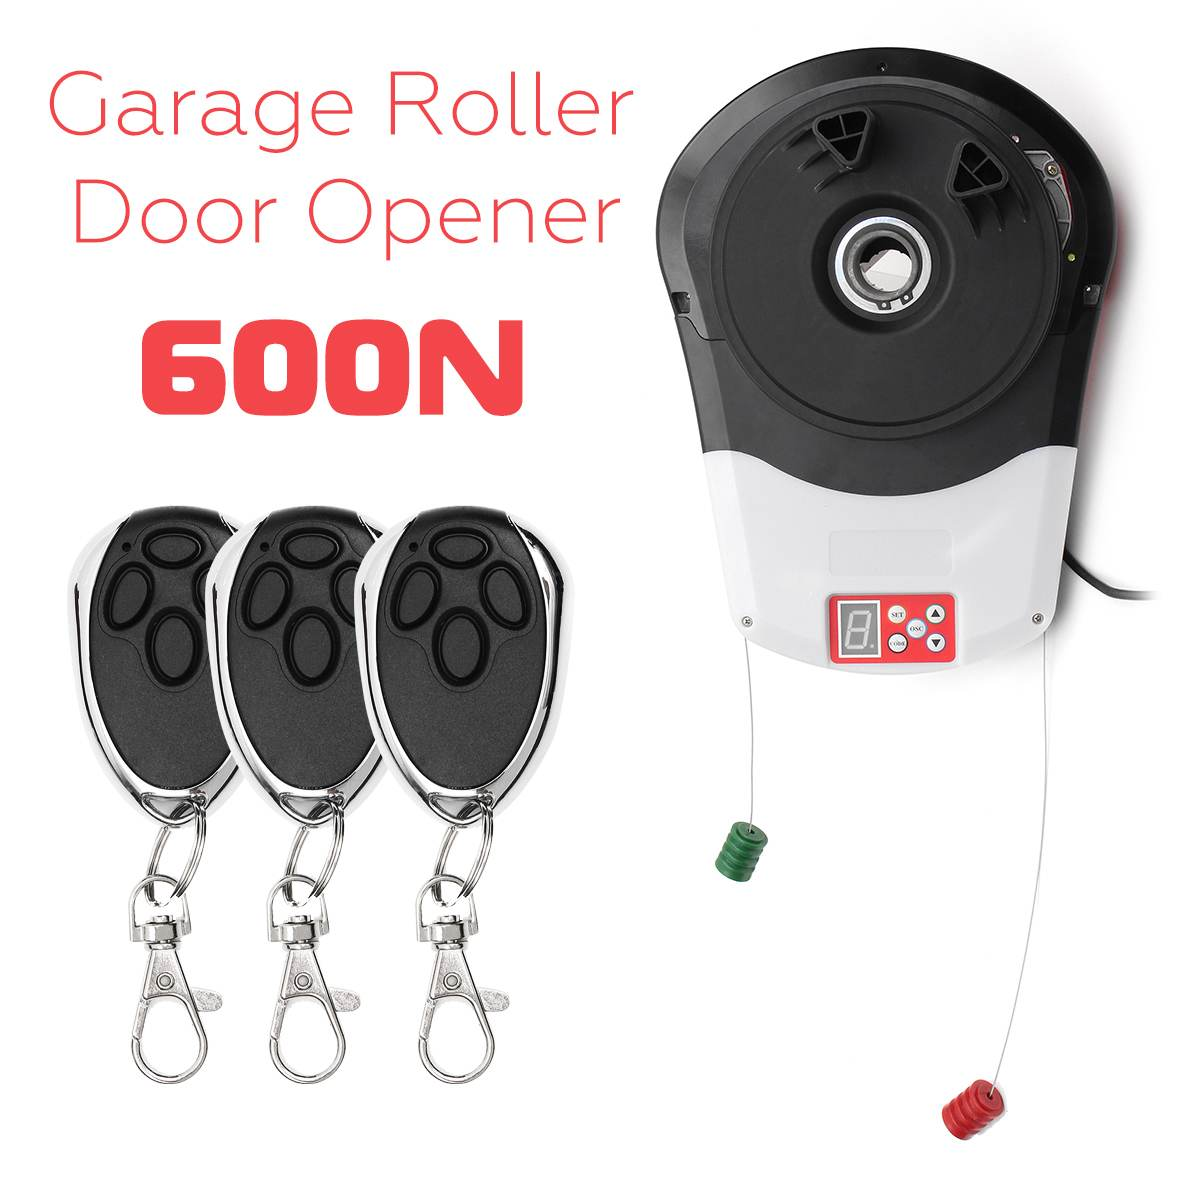 110V 600N Garage Roller Door Auto Opener Motor with 3 Remote Control Electric Operator for Rolling Gate Automatic Door Operators110V 600N Garage Roller Door Auto Opener Motor with 3 Remote Control Electric Operator for Rolling Gate Automatic Door Operators